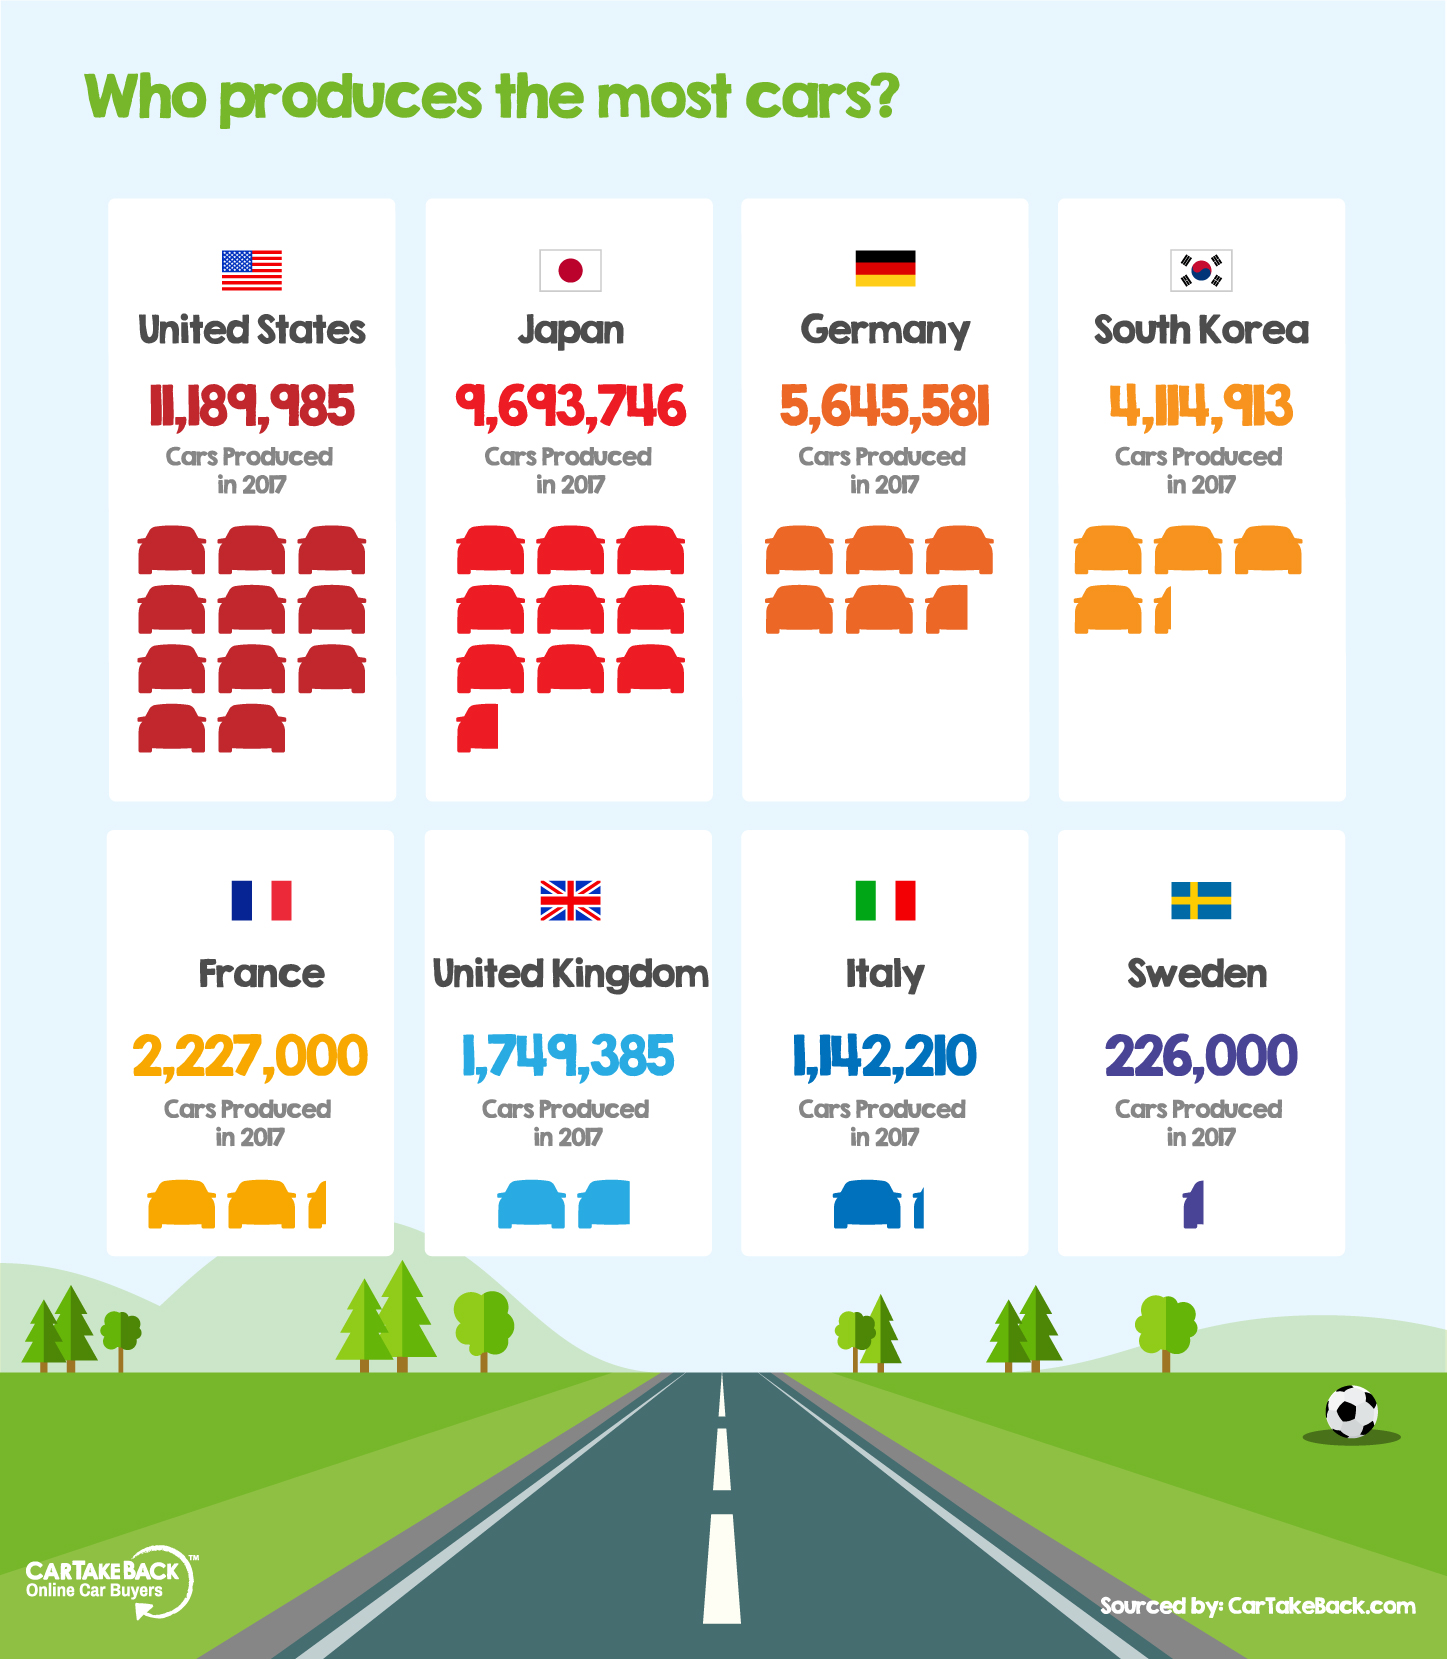 Which country produces the most cars?